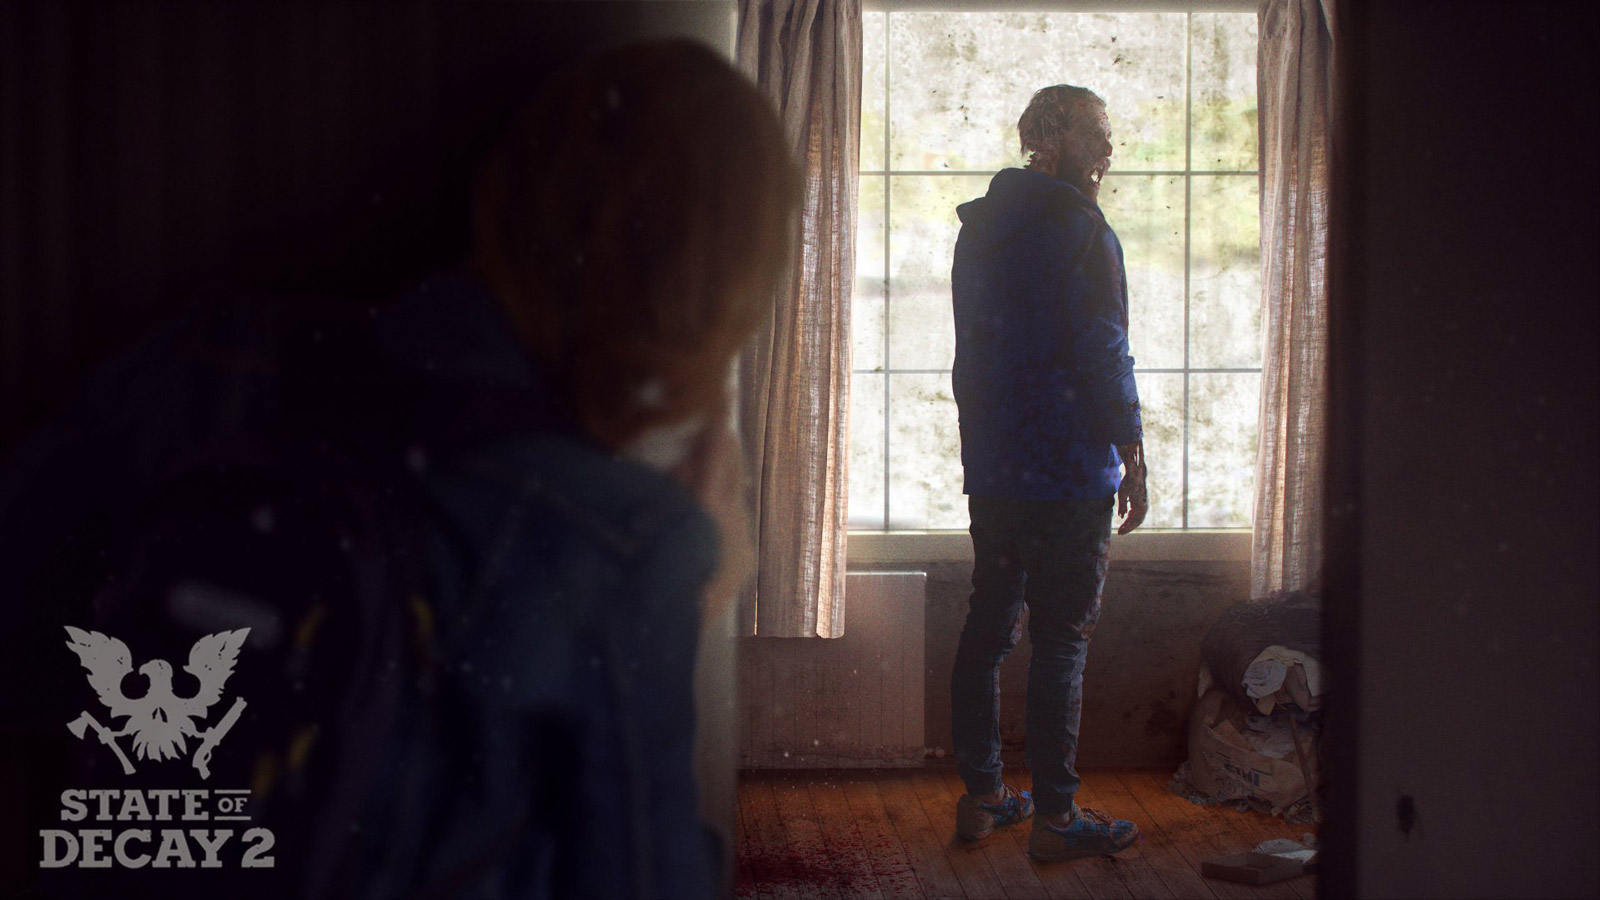 Free State of Decay 2 Wallpaper in 1600x900